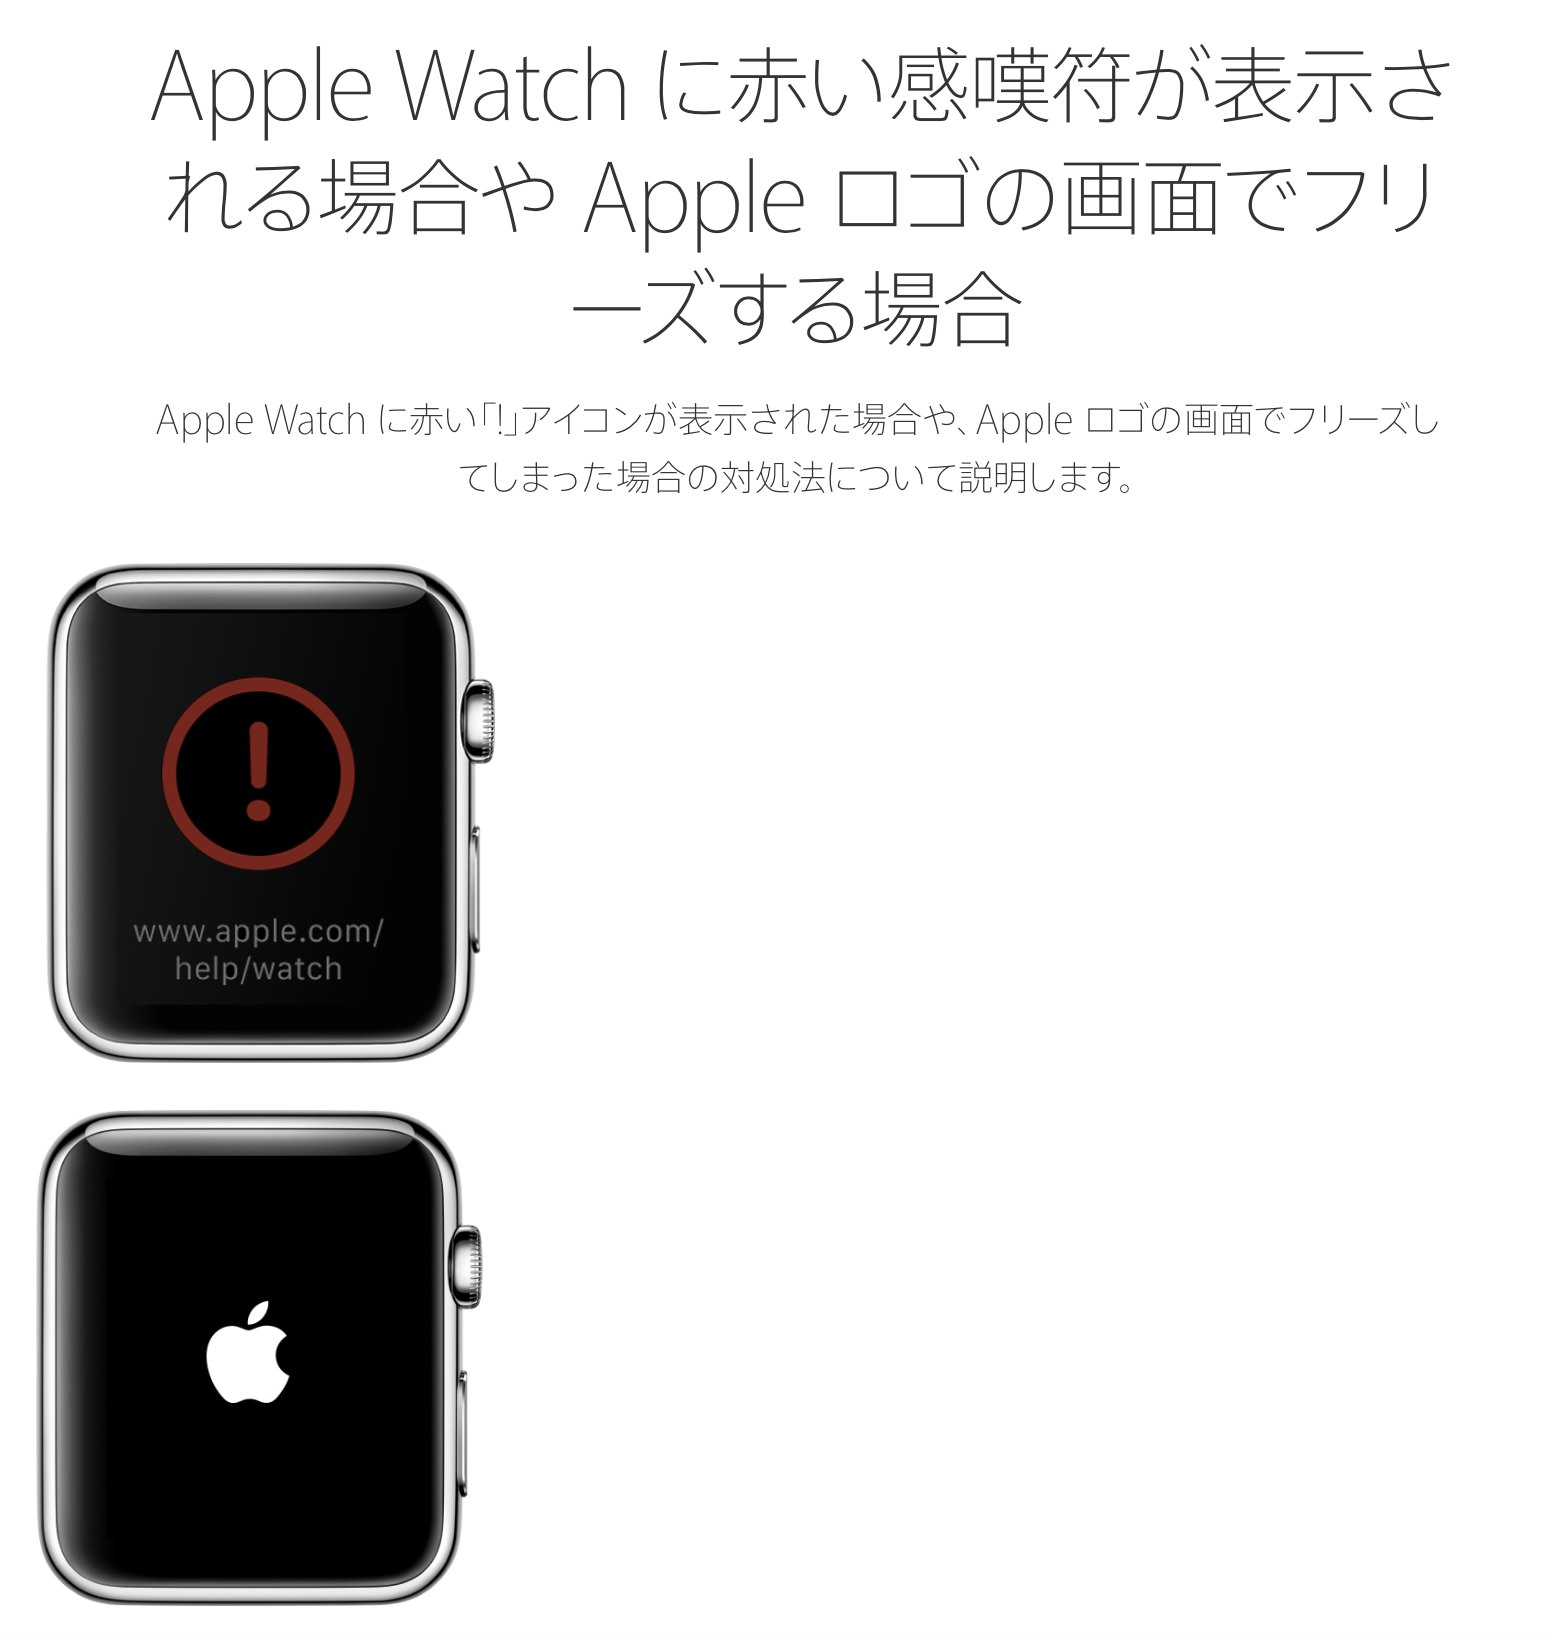 applewatch-support